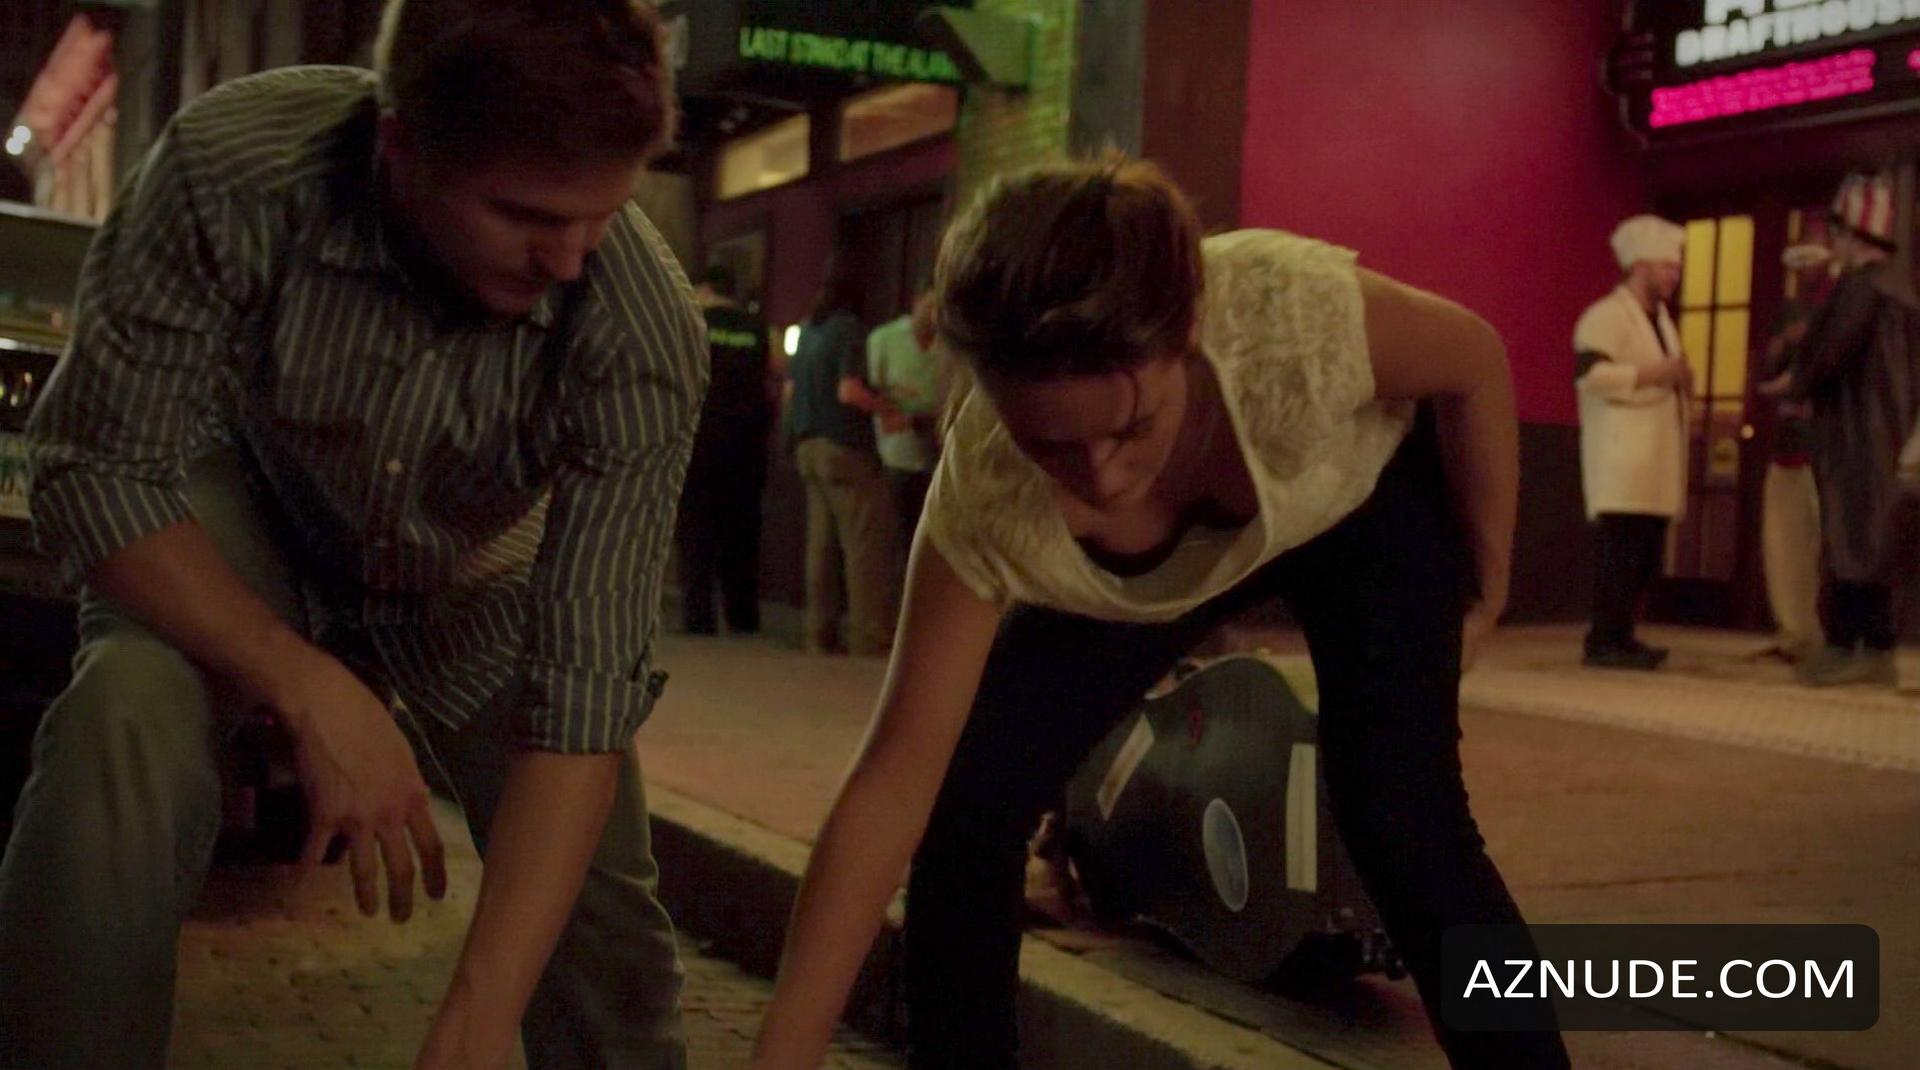 Addison timlin sex in that awkward moment scandalplanetcom - 2 part 1